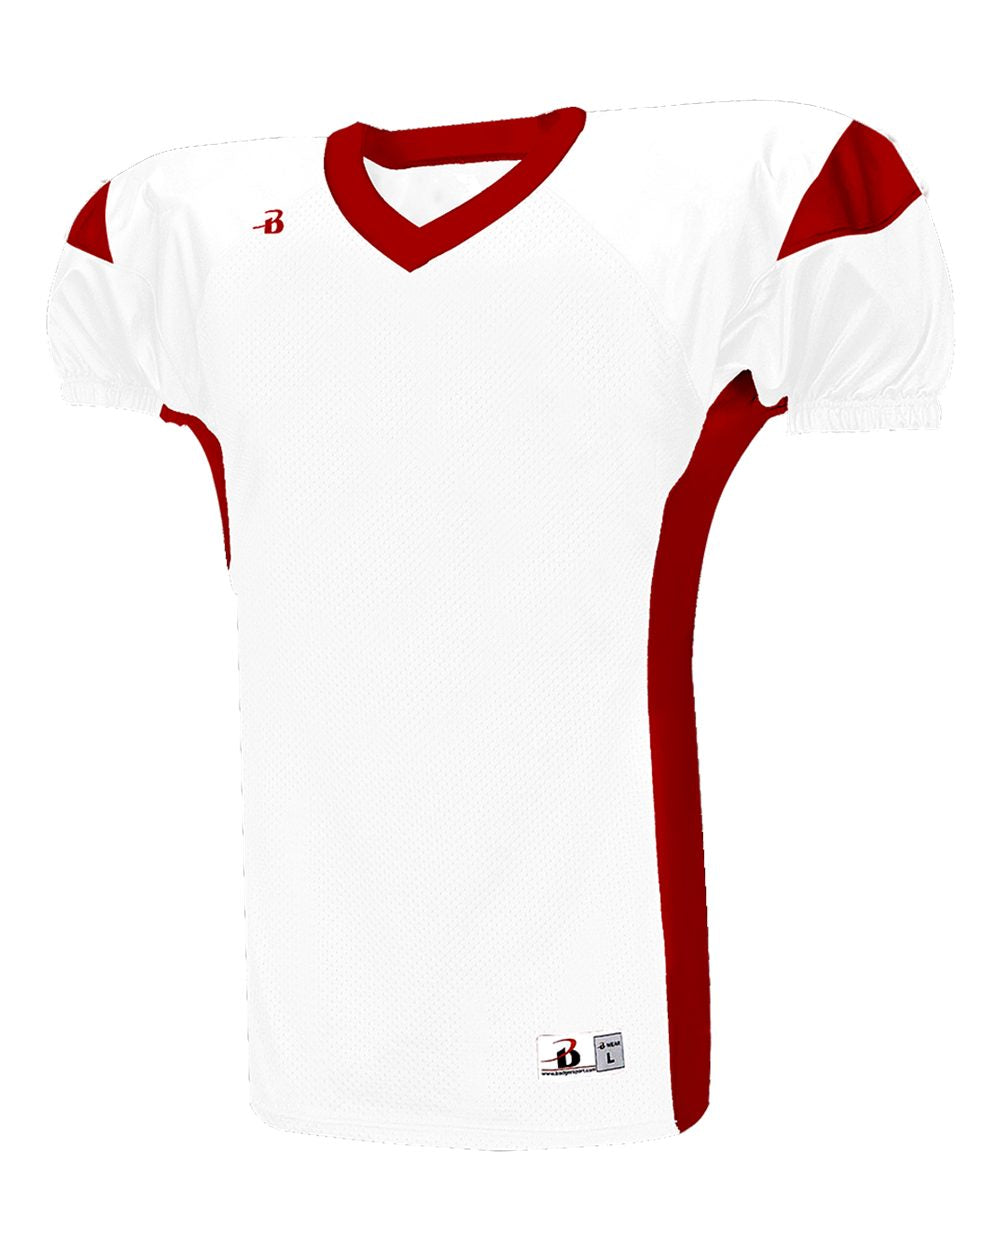 VIENNA WARHAWKS Youth Football Game Jersey - White/Red